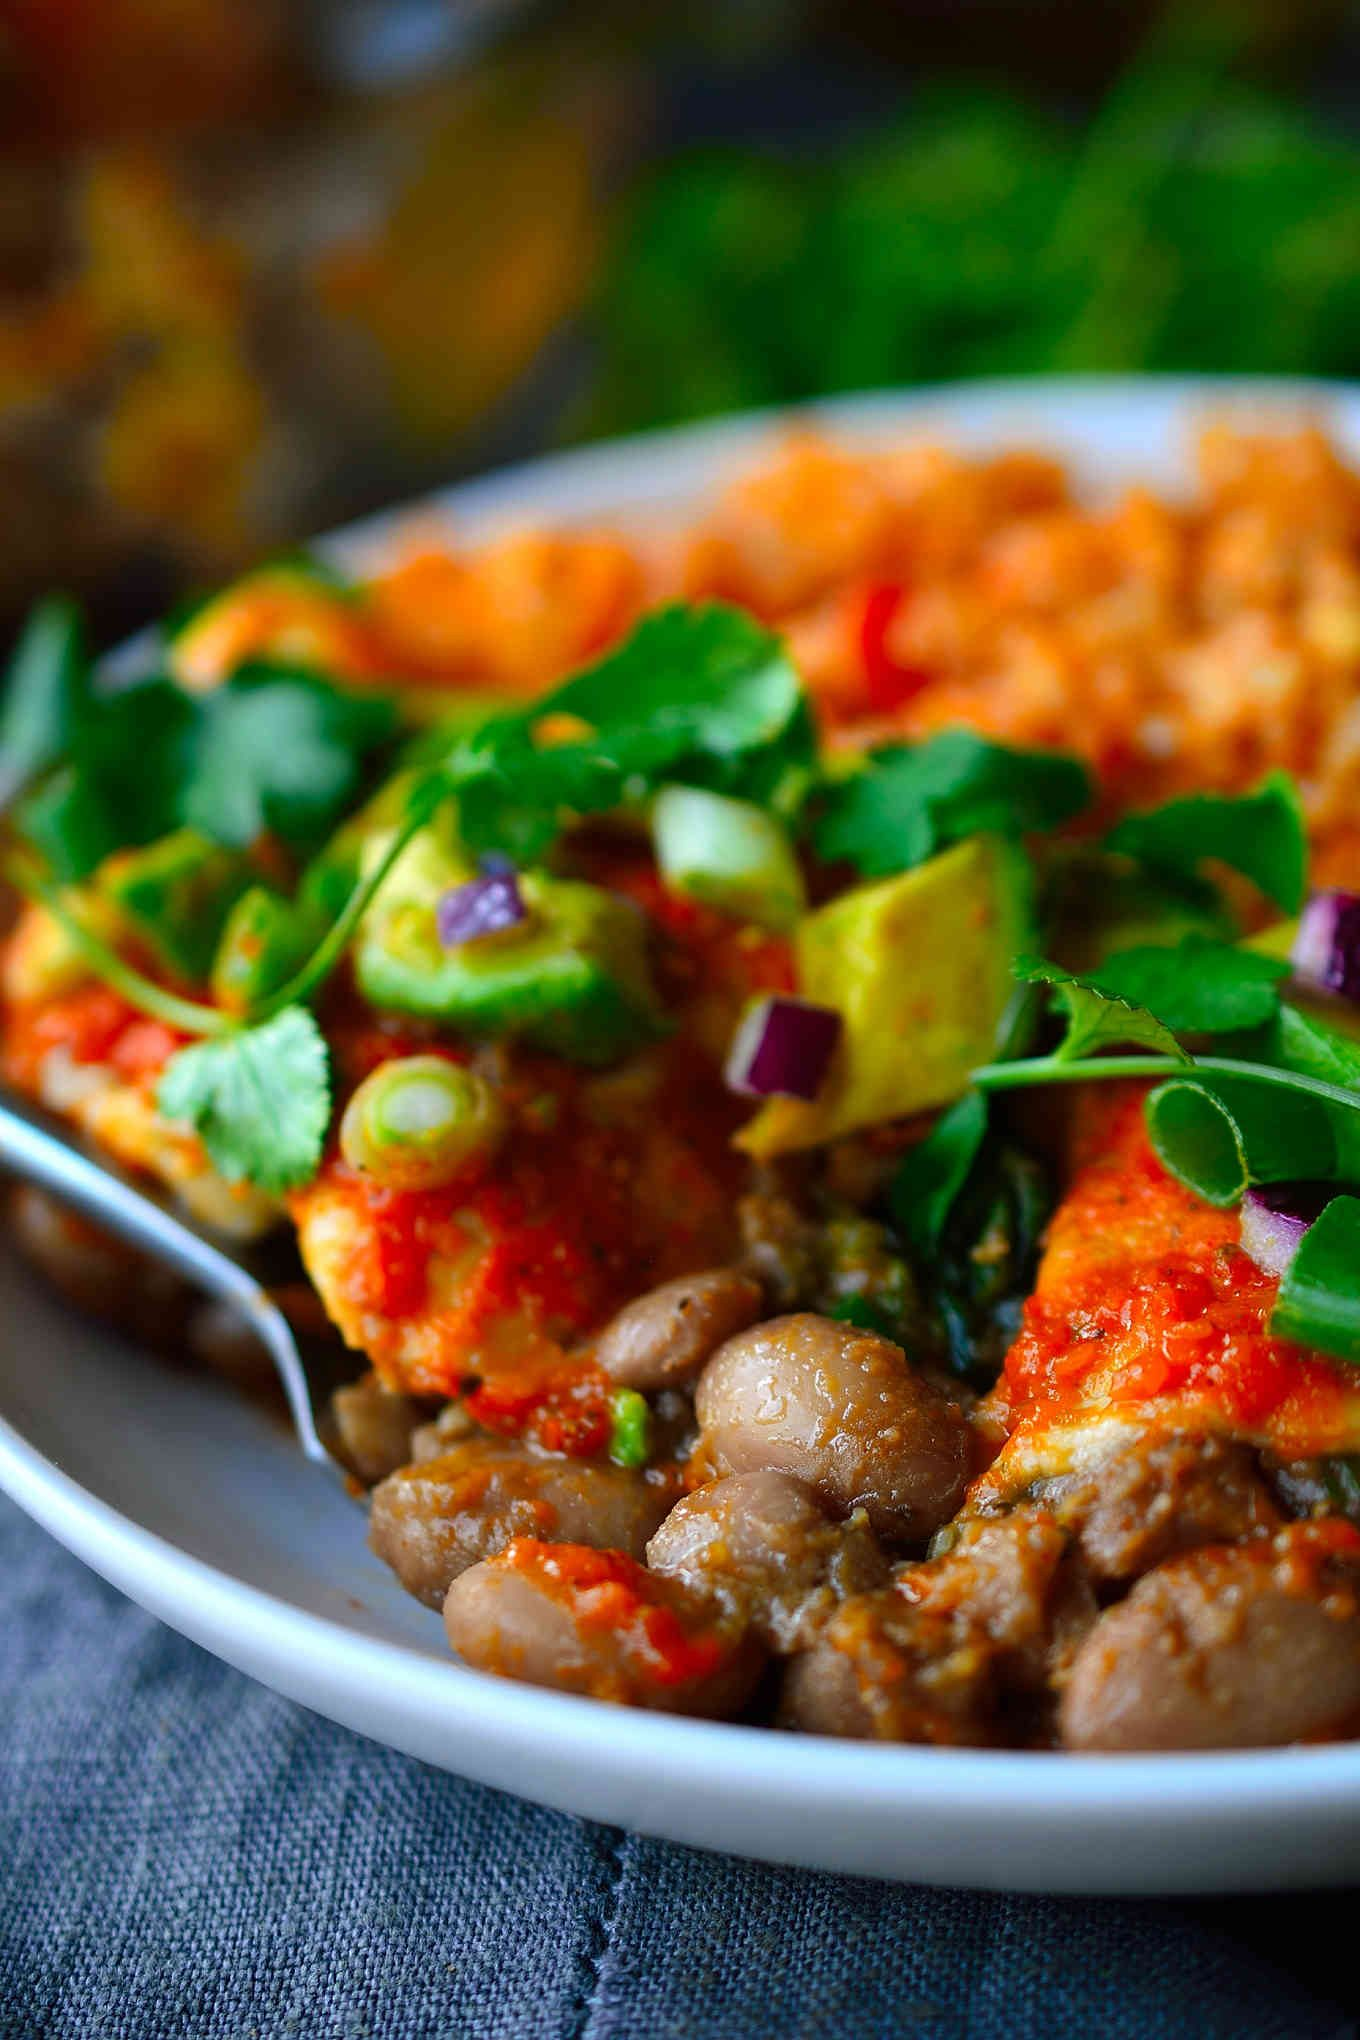 This Recipe For Pinto Bean Enchiladas Is Super Hearty With A Filling Of Slow Cooked